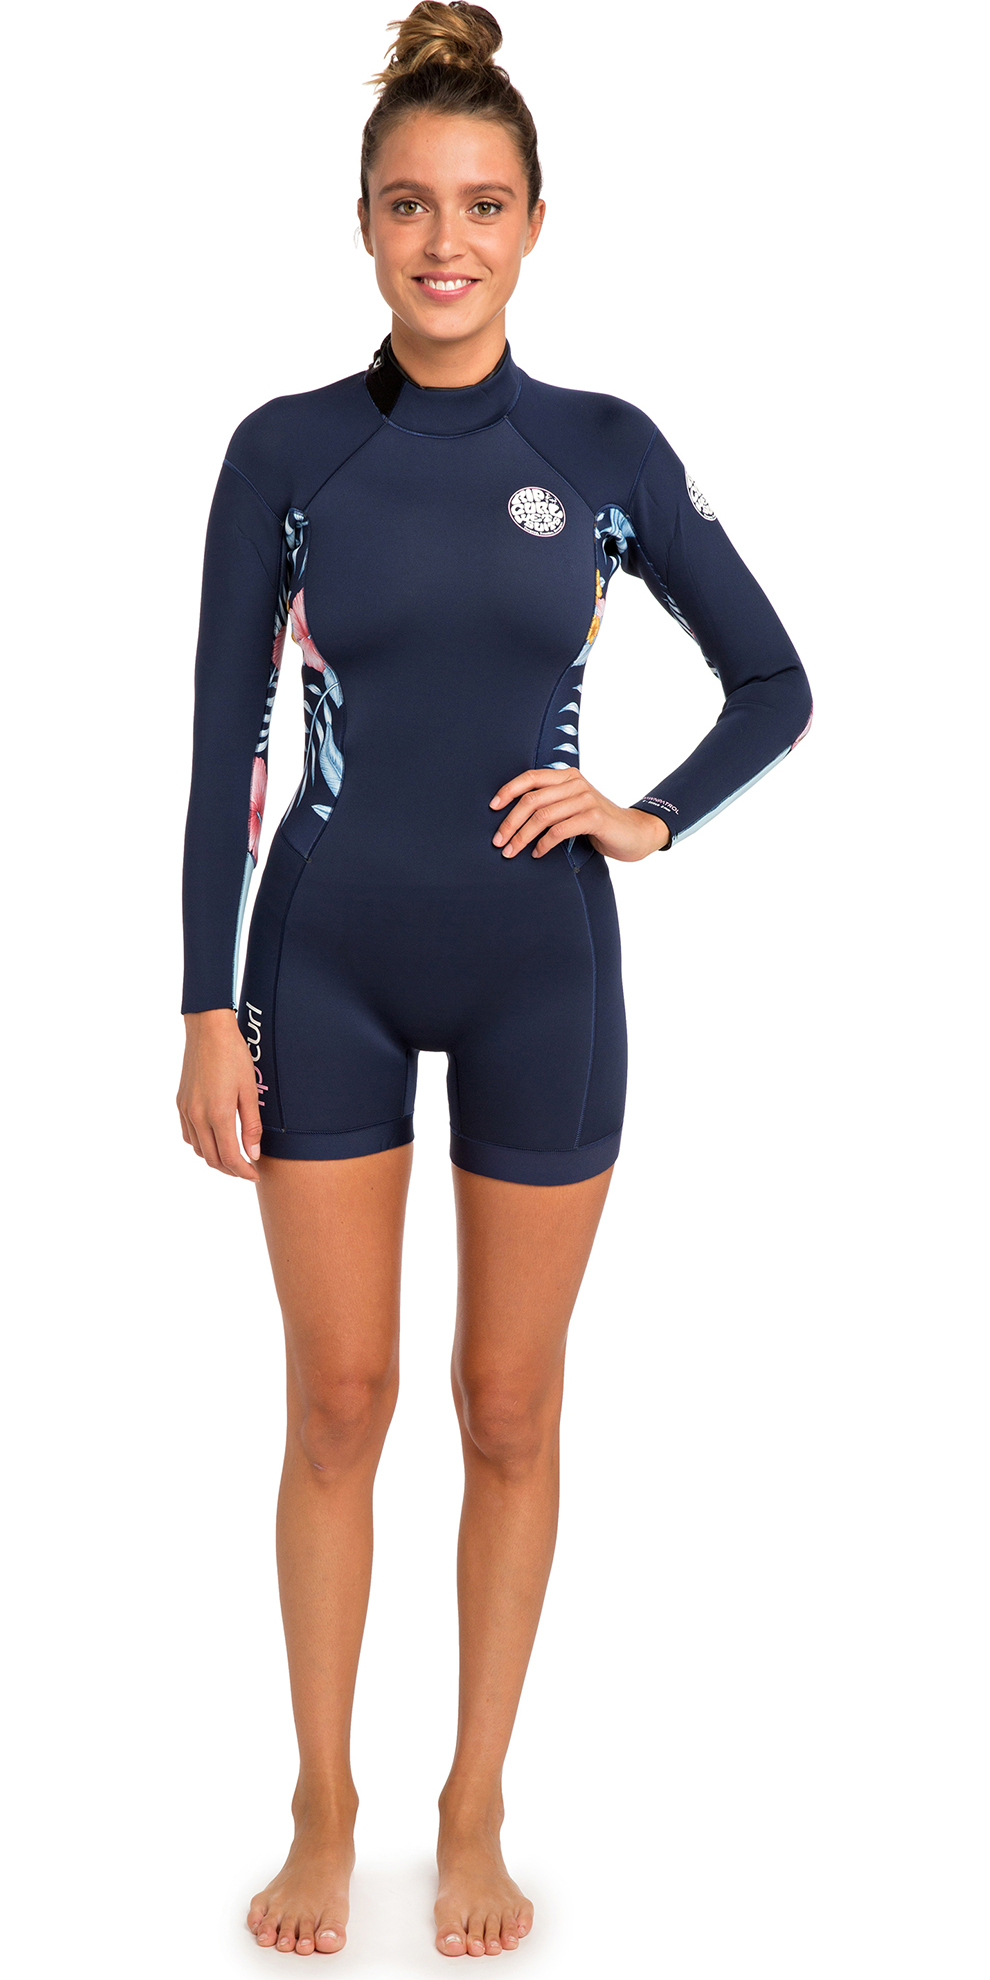 ba65bc0631 2019 Rip Curl Womens Dawn Patrol 2mm Long Sleeve Shorty Wetsuit Navy Wsp8gw  - Womens - Shorty